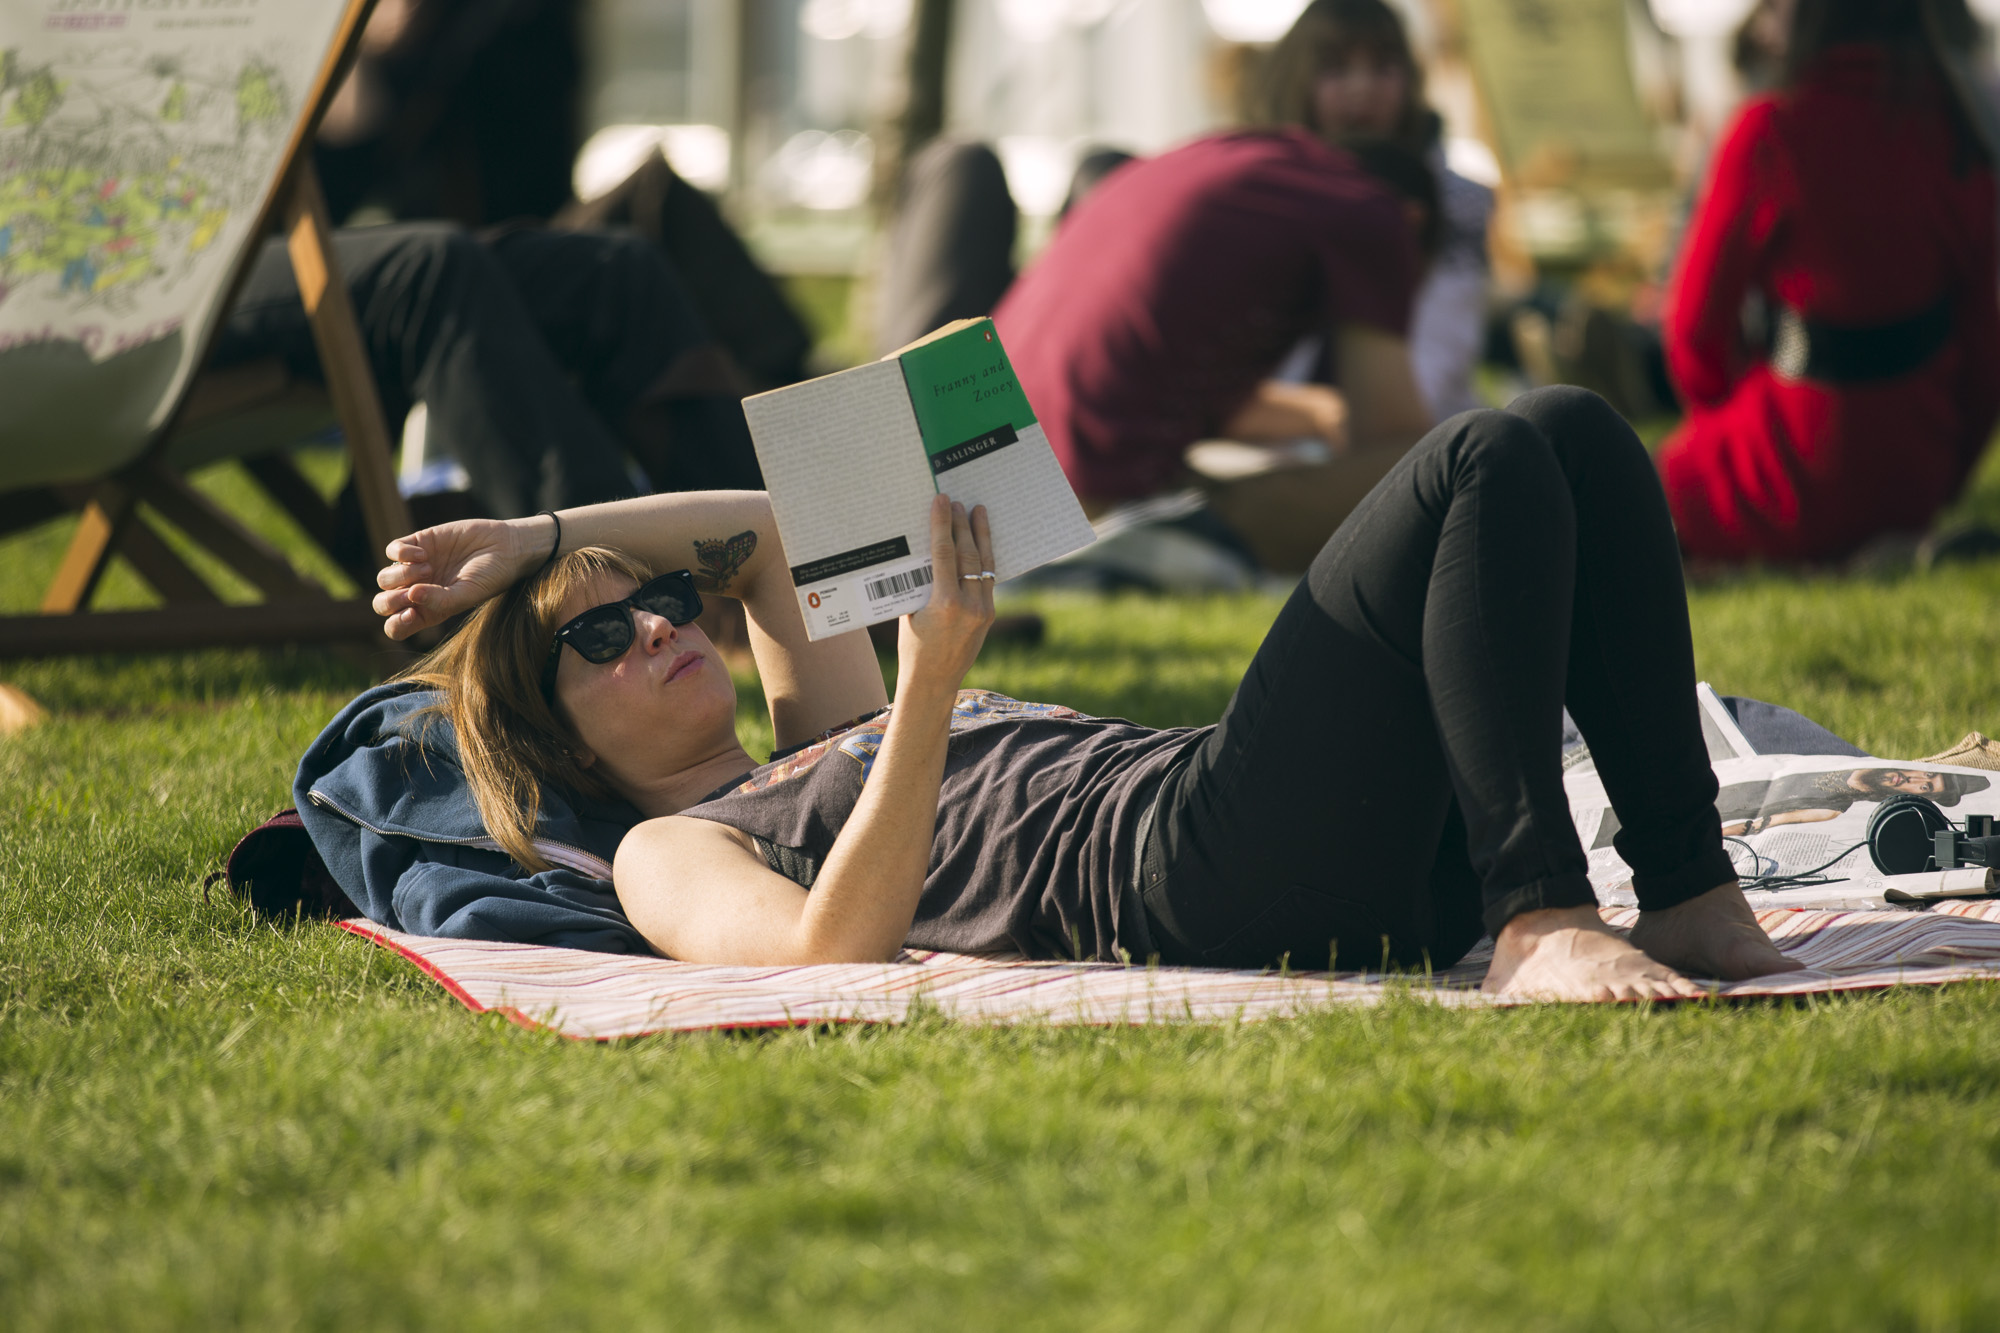 Hay Festival PErson reading book